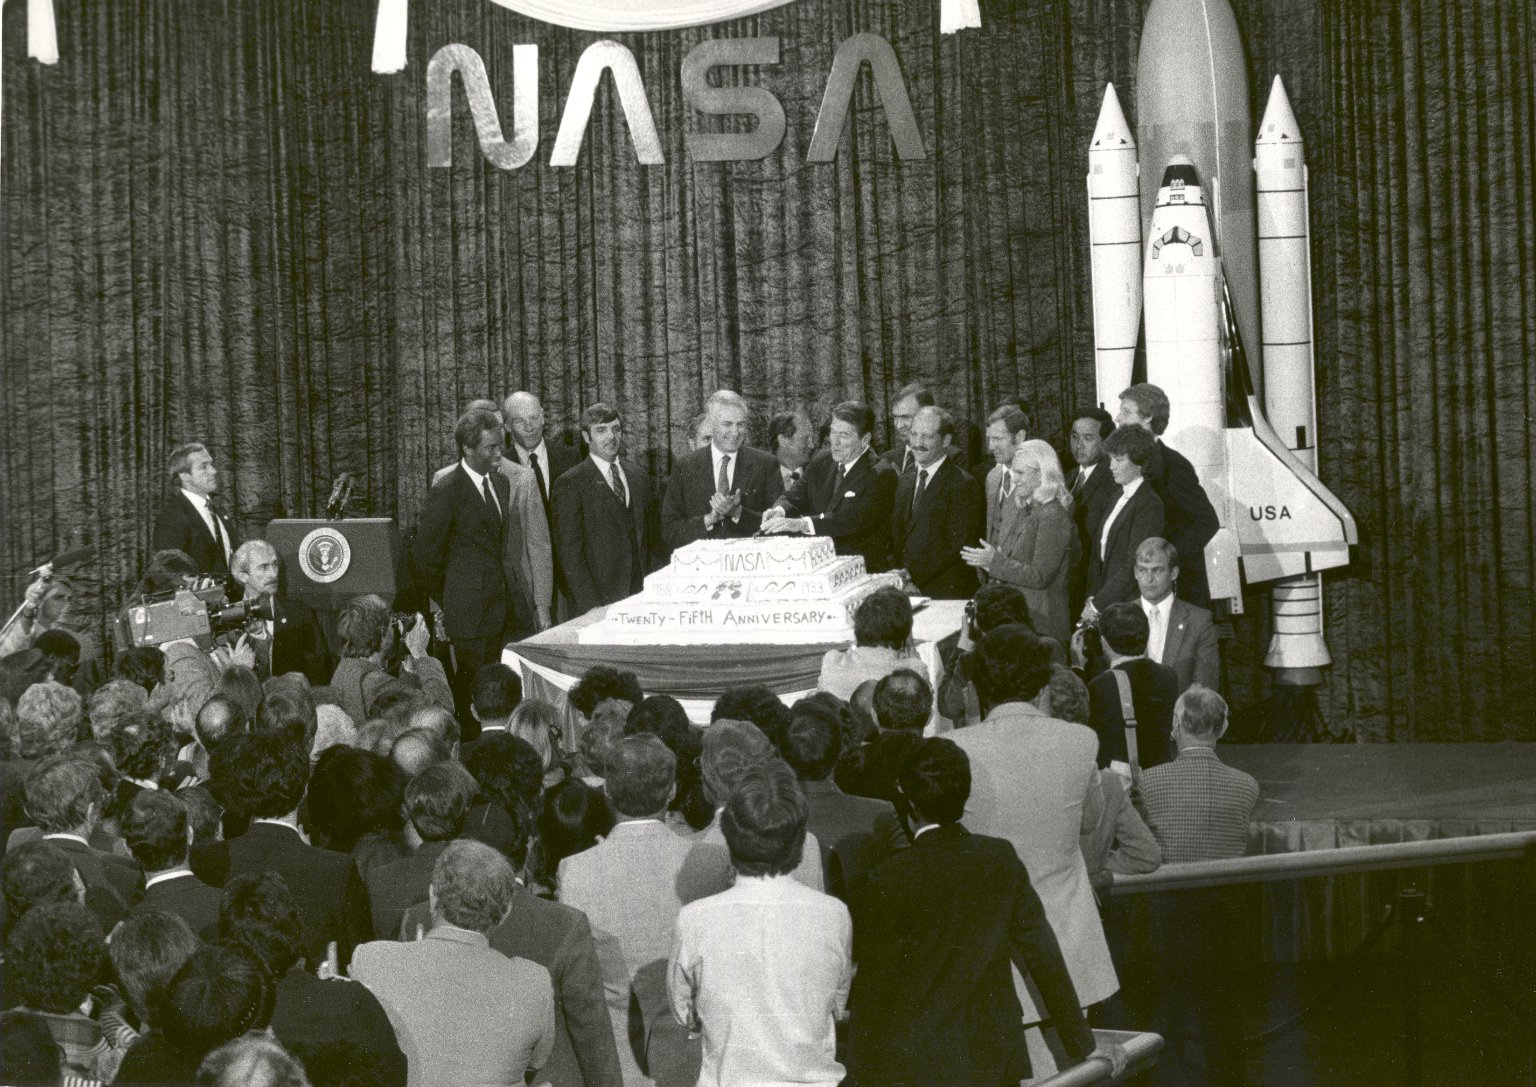 NASA Celebrates its 25th Anniversary